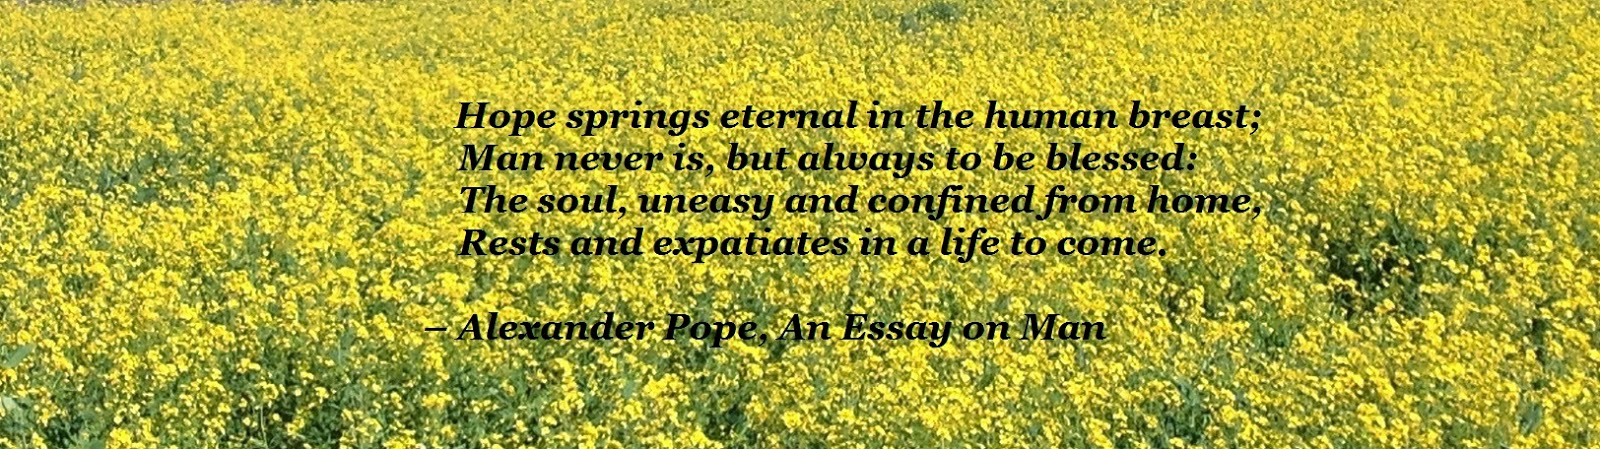 hope springs eternal essay